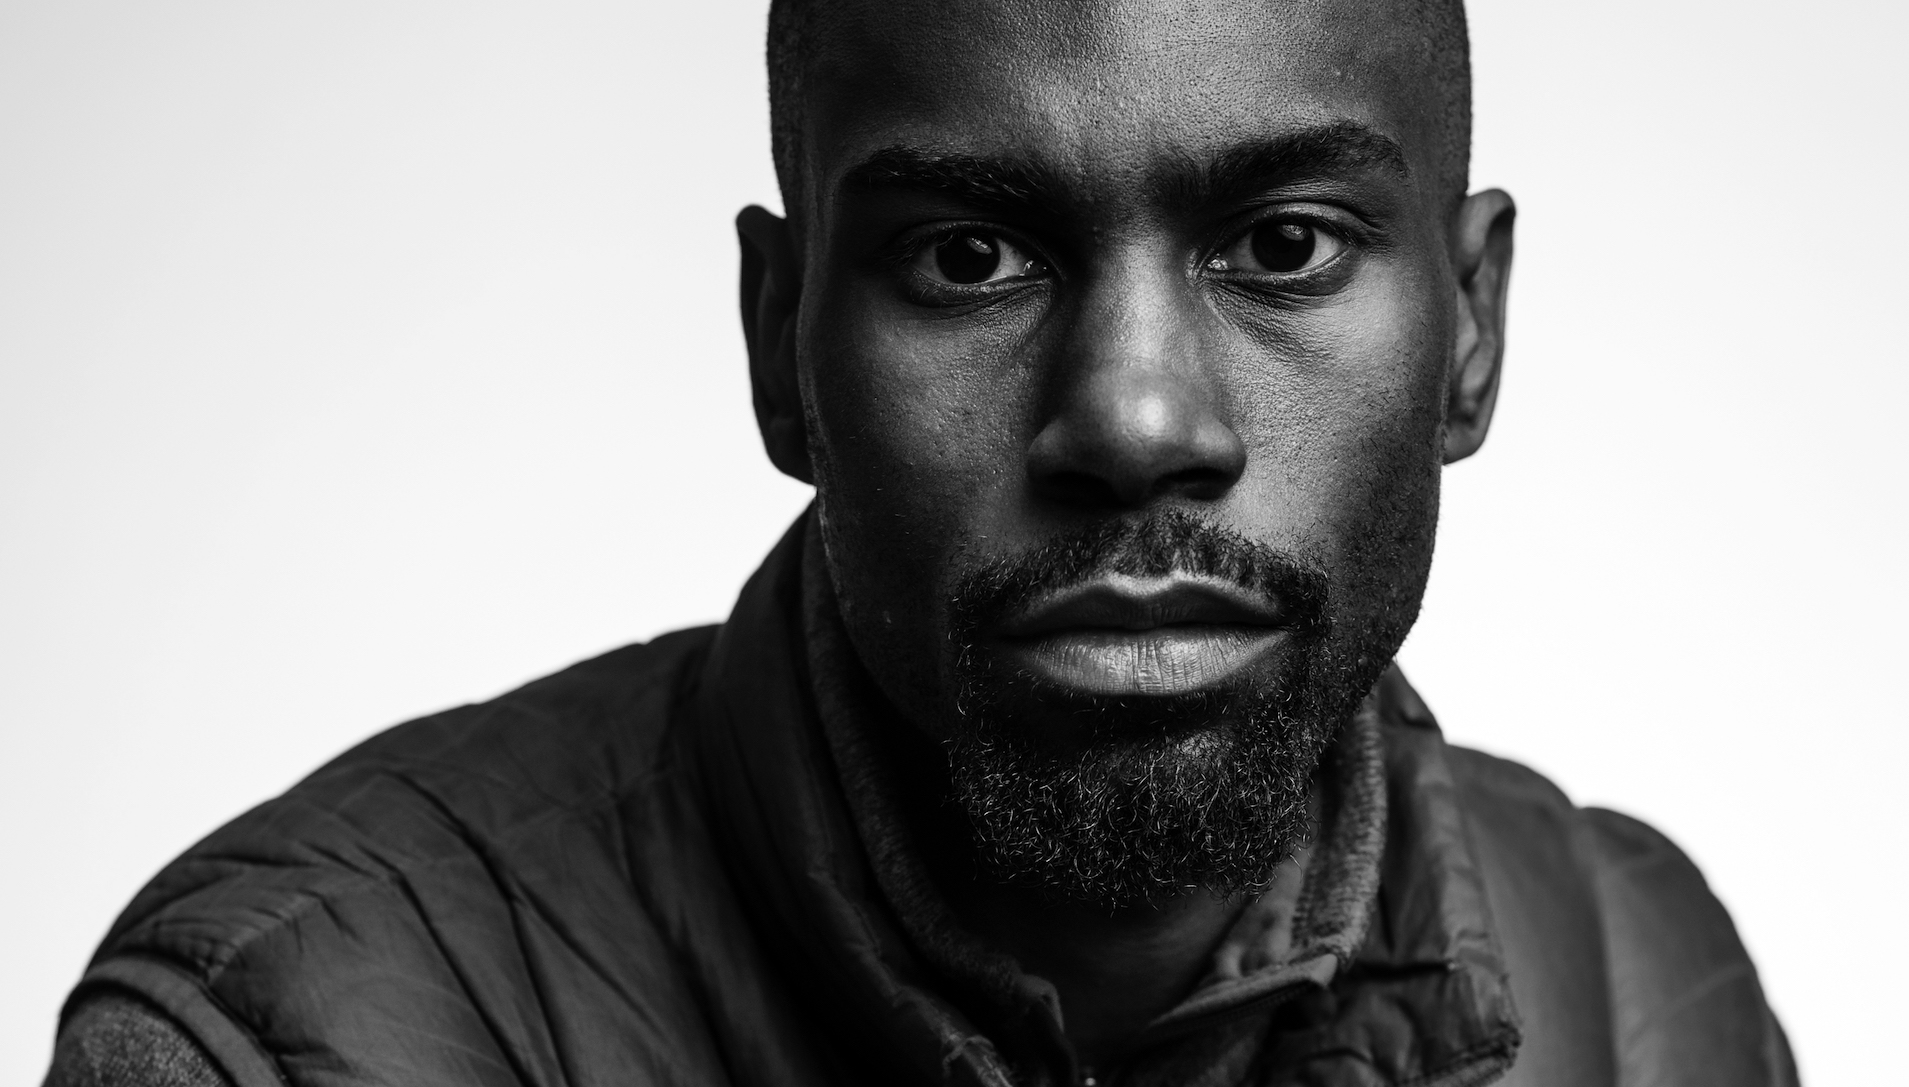 DeRay Mckesson: Why I'm voting for Hillary Clinton